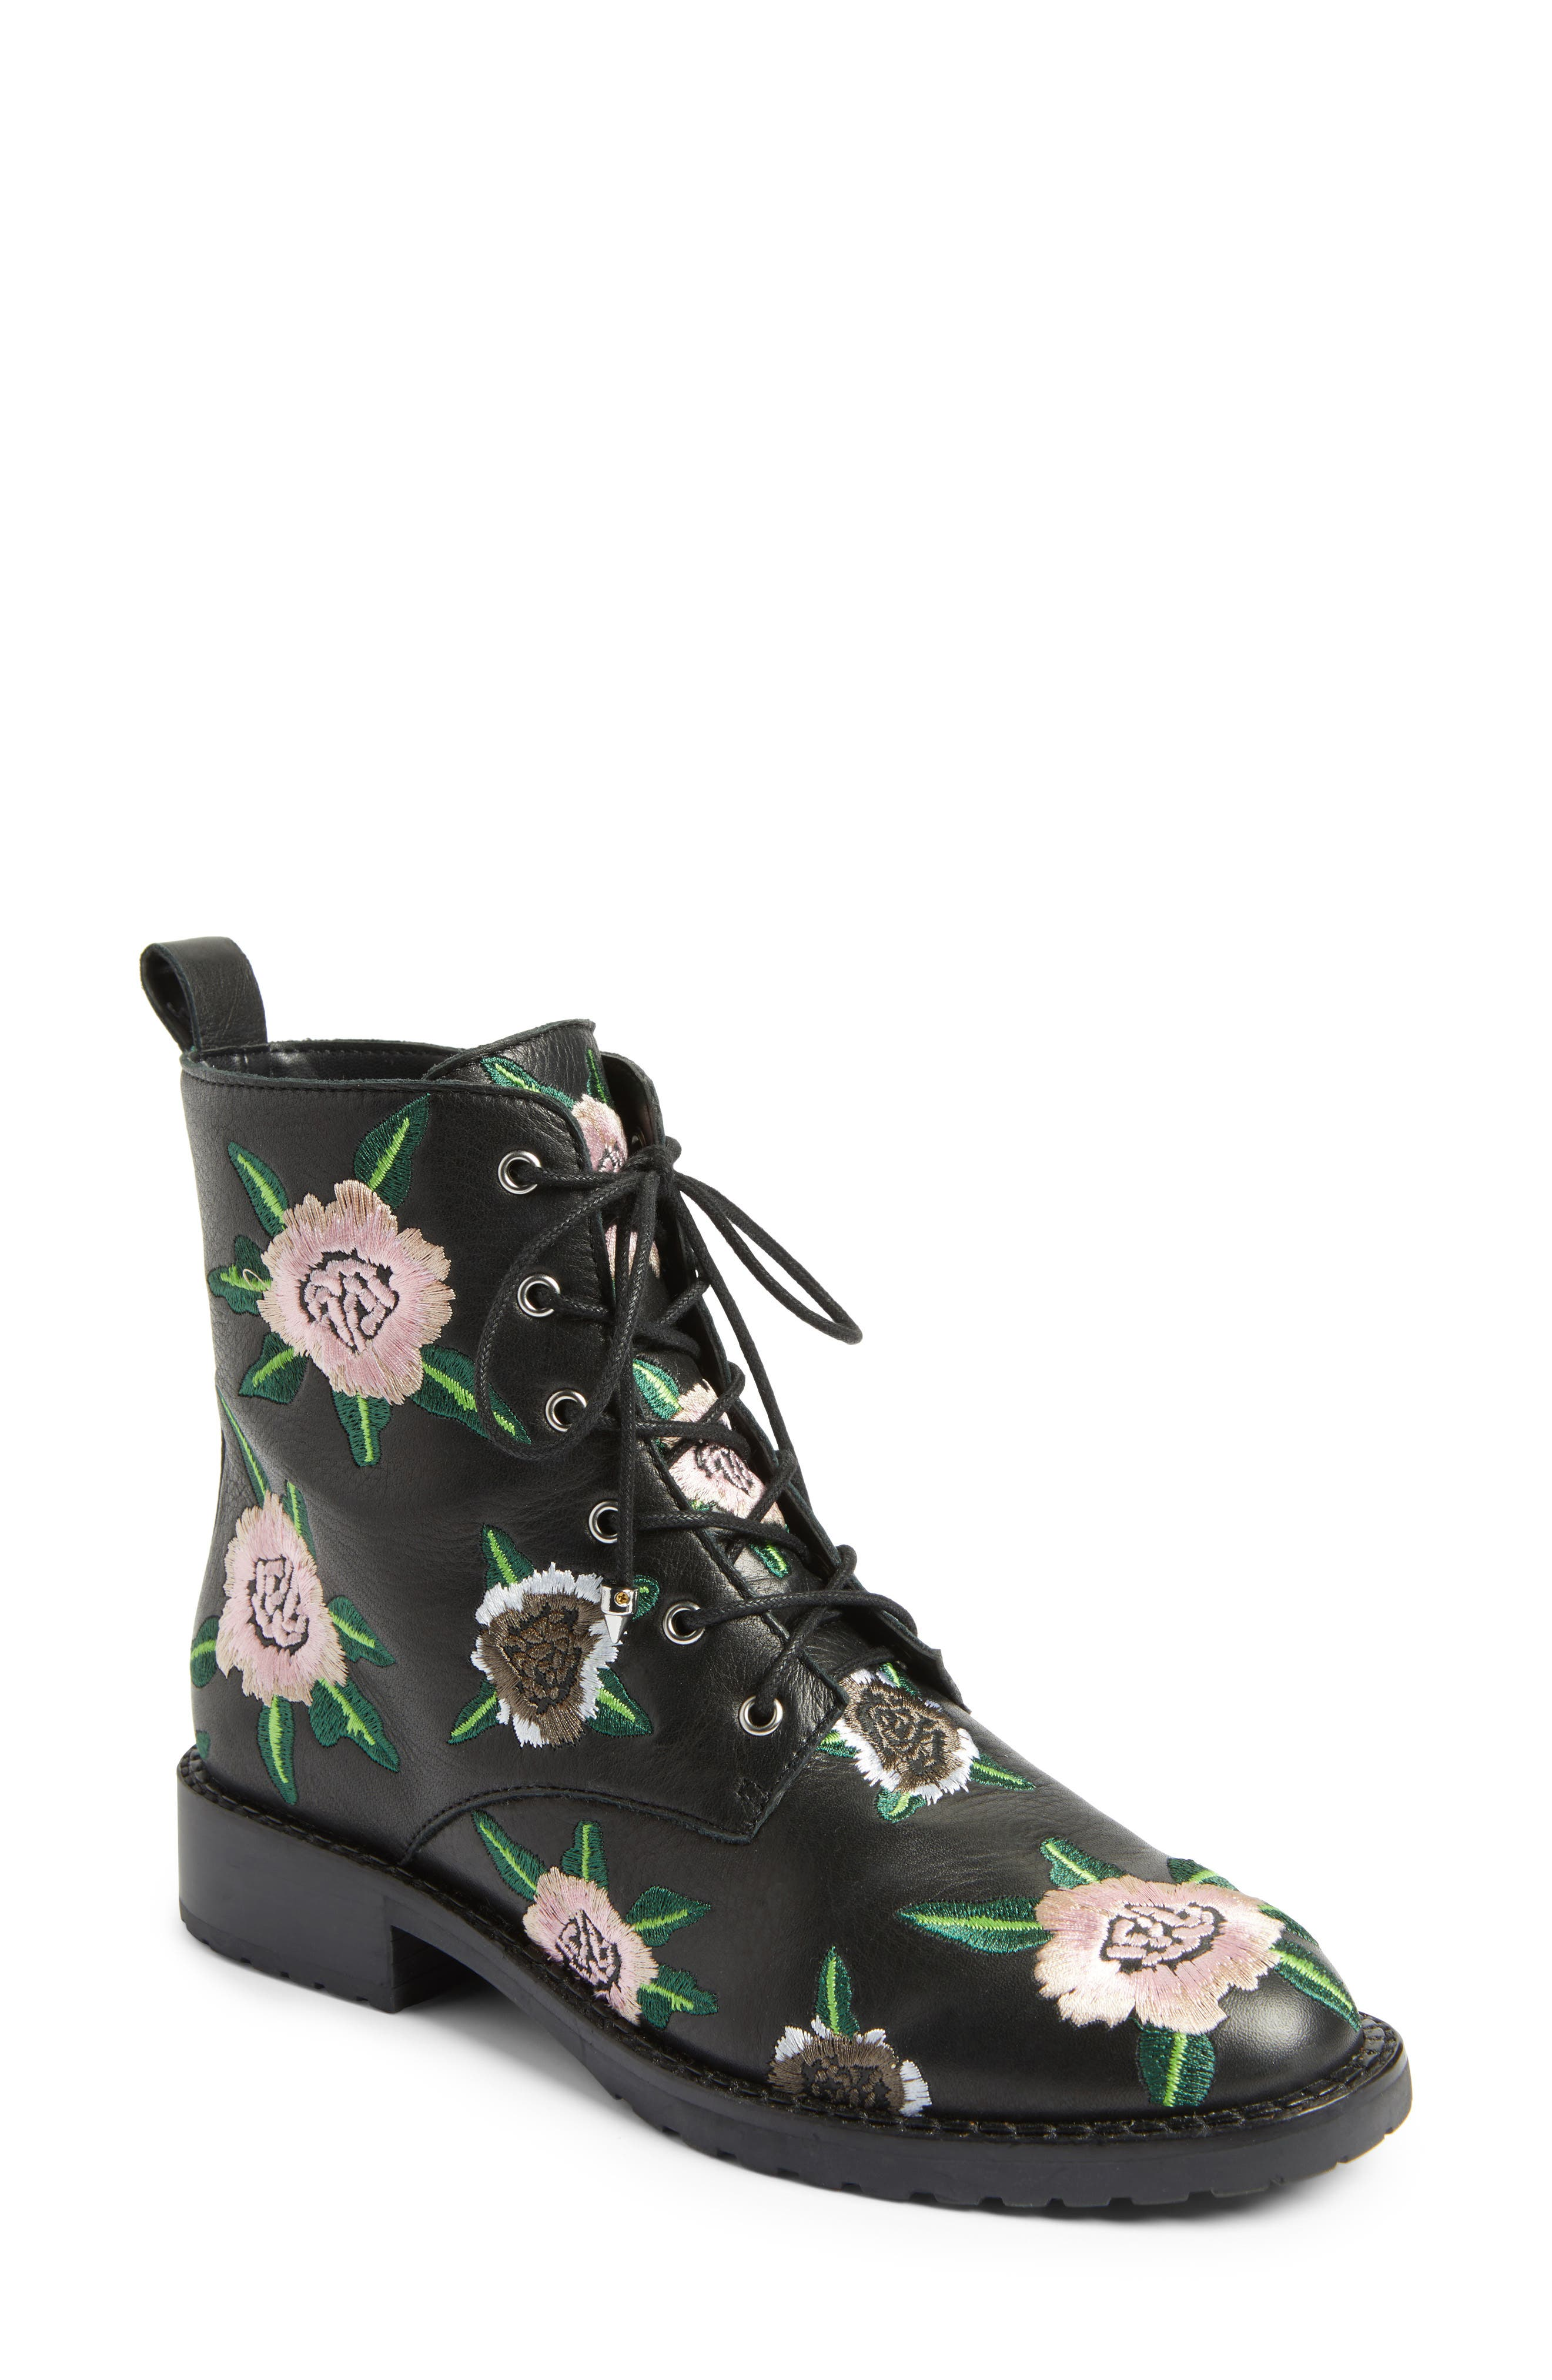 Alternate Image 1 Selected - Rebecca Minkoff Gerry Embroidered Lace-Up Boot (Women)